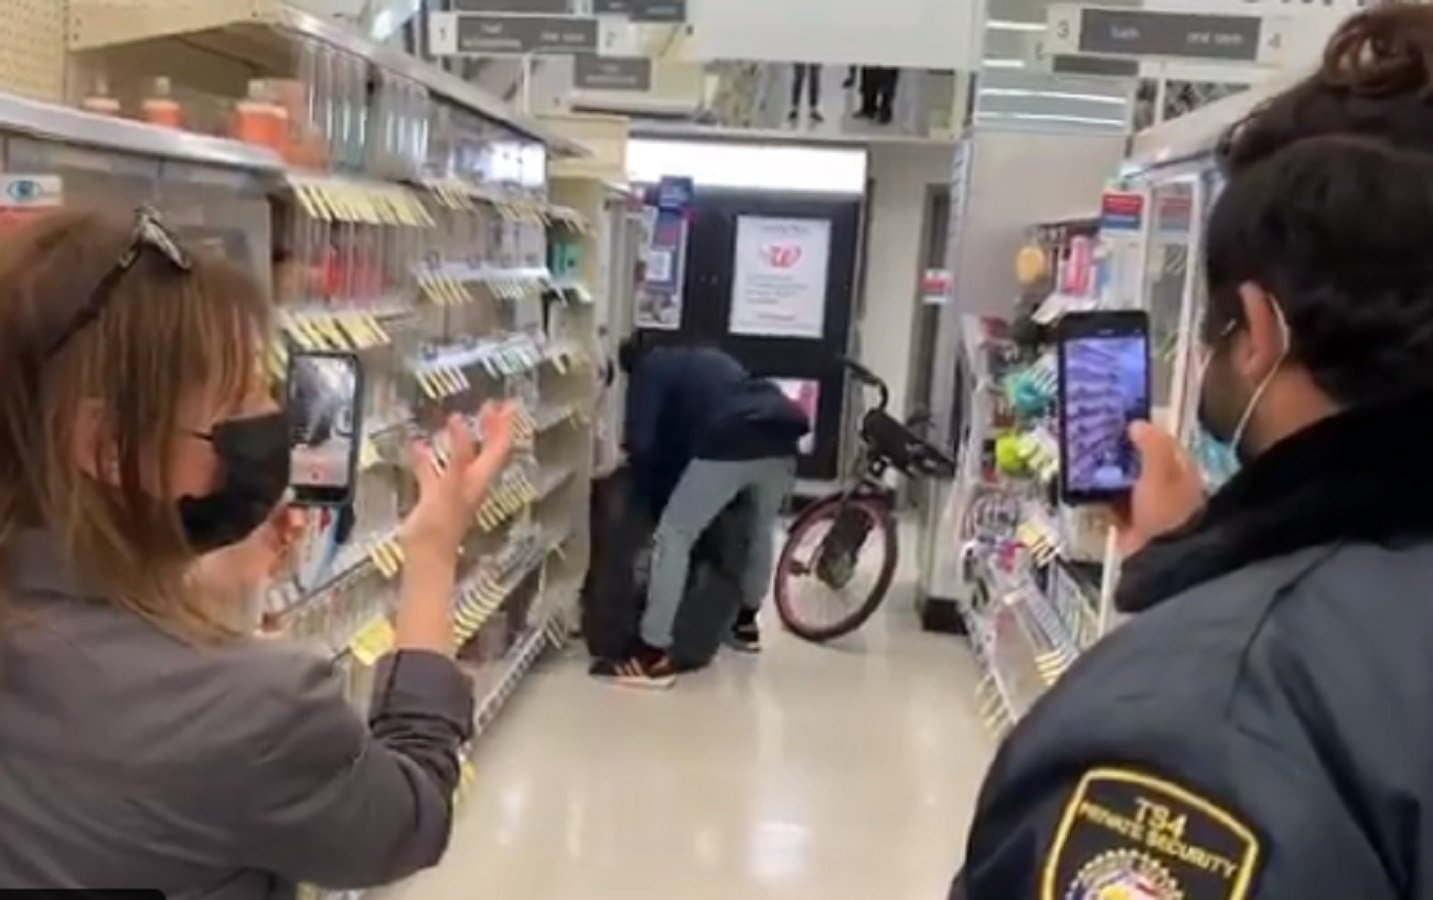 SHOCKING VIDEO: Thief Rides Bike Into San Francisco Walgreens, Fills Trash Bag With Goods — Security Watches and Films